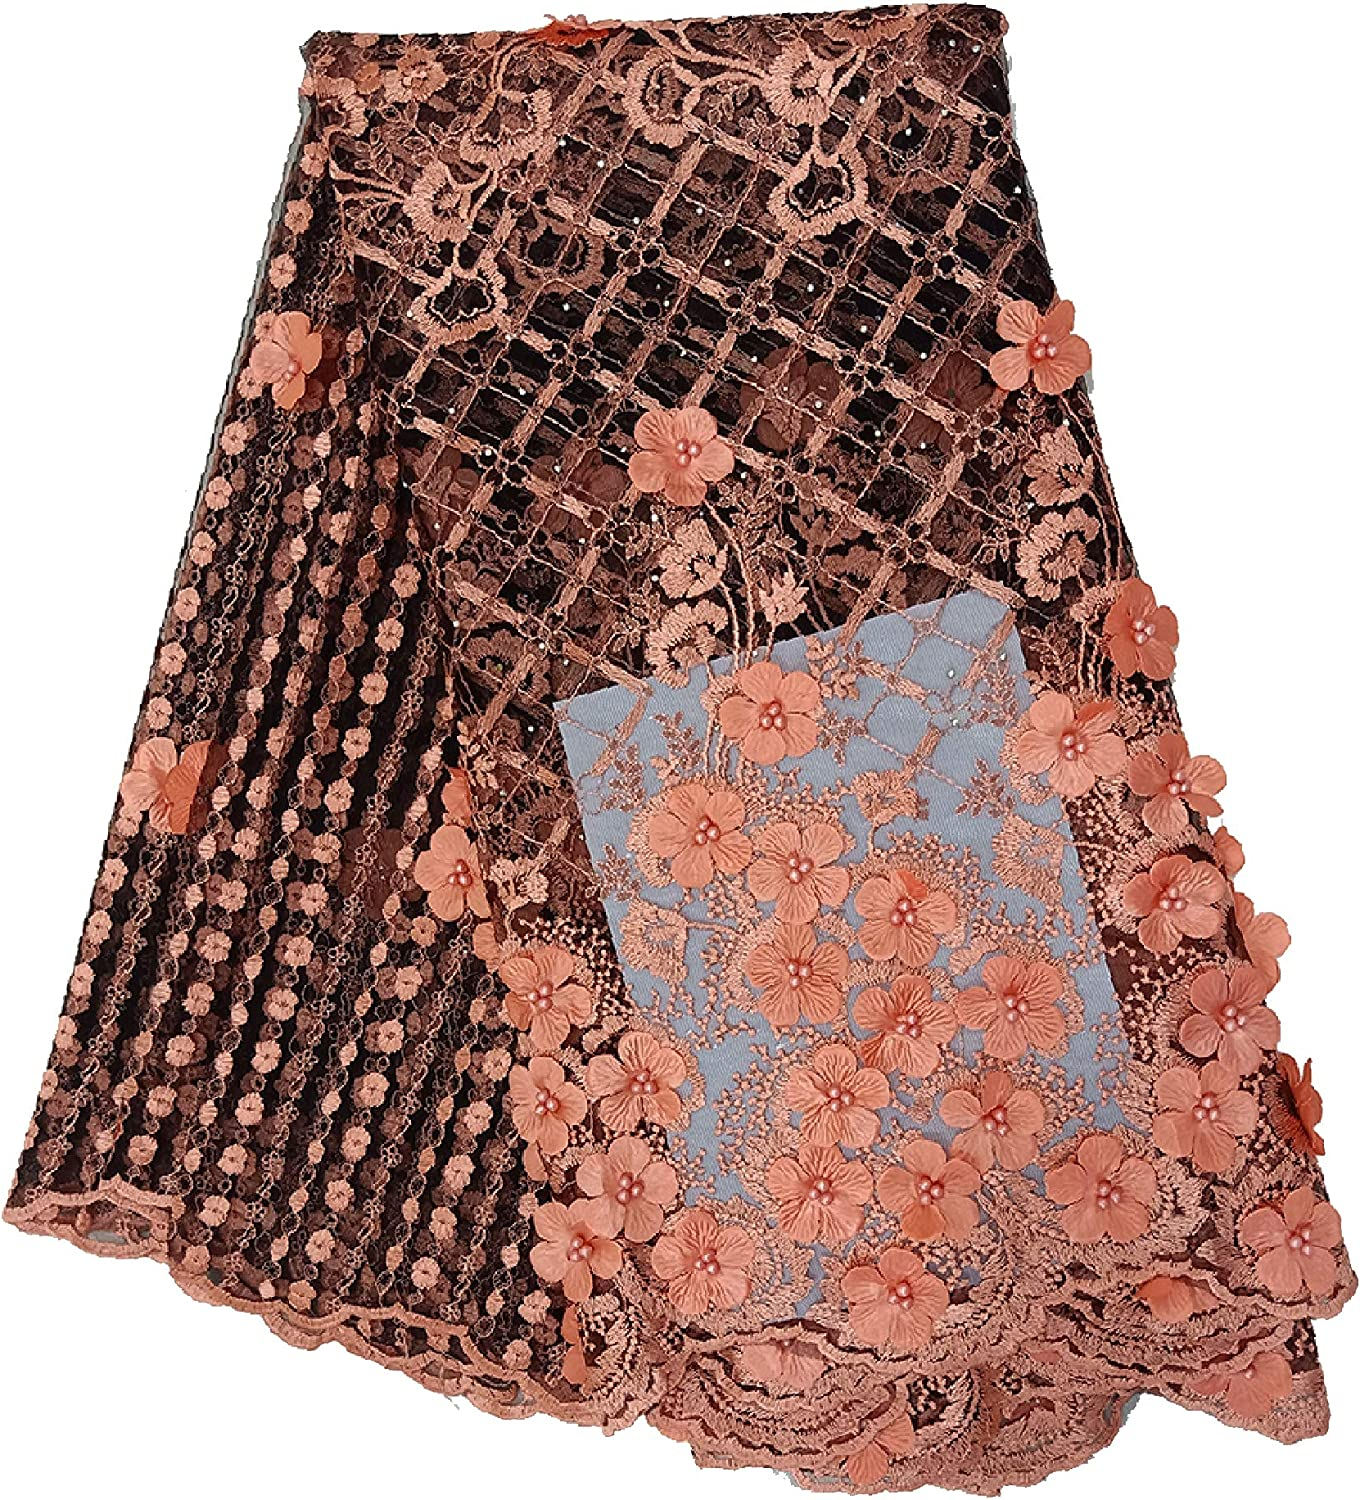 Blush Pink French Corded Flowers Embroider In A Design Mesh Lace Yard